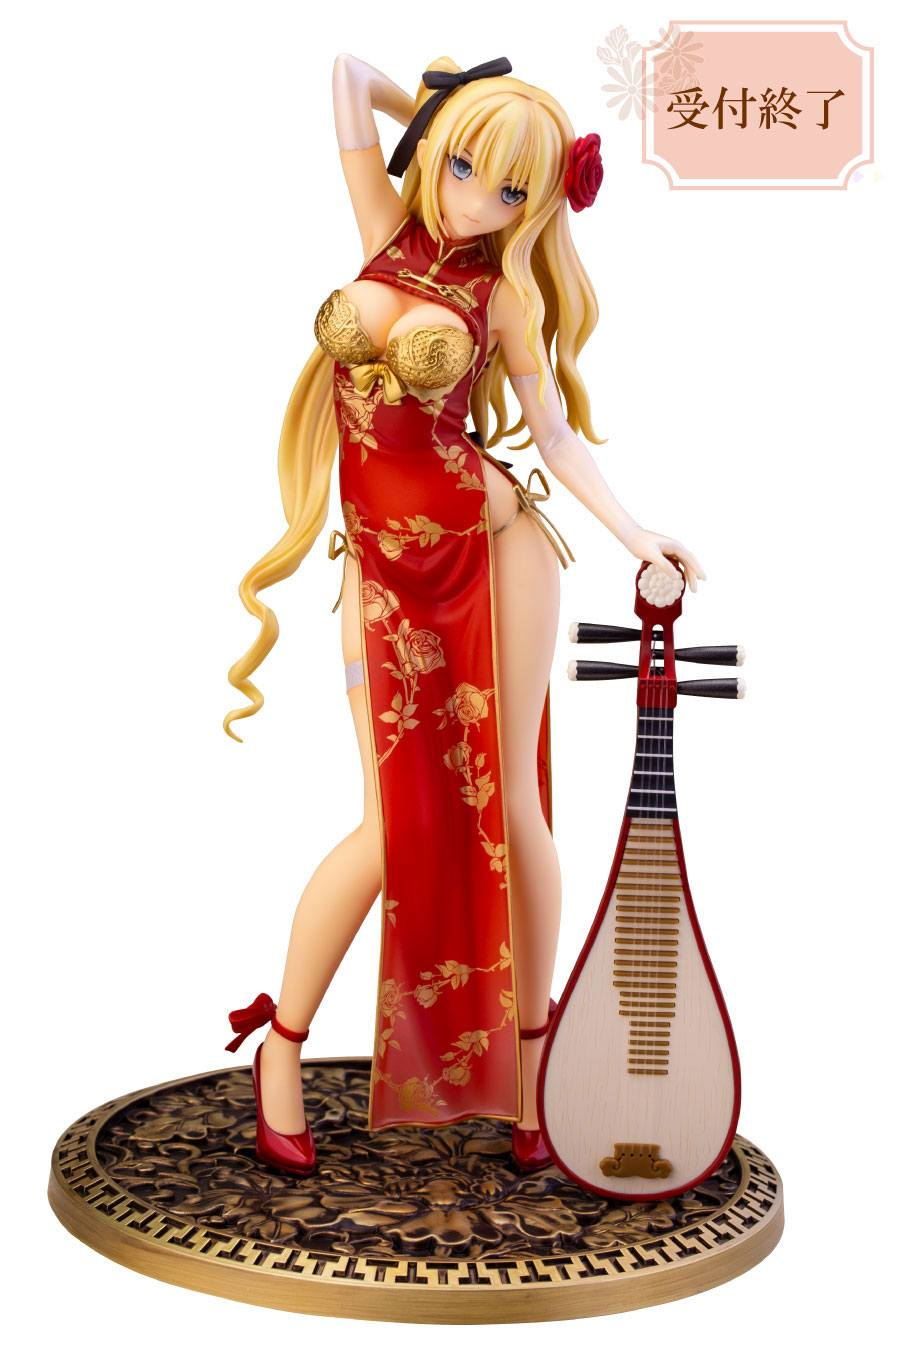 T2 Art Girls STP PVC Statue 1/6 Jin-Lian Red Ver. 27 cm